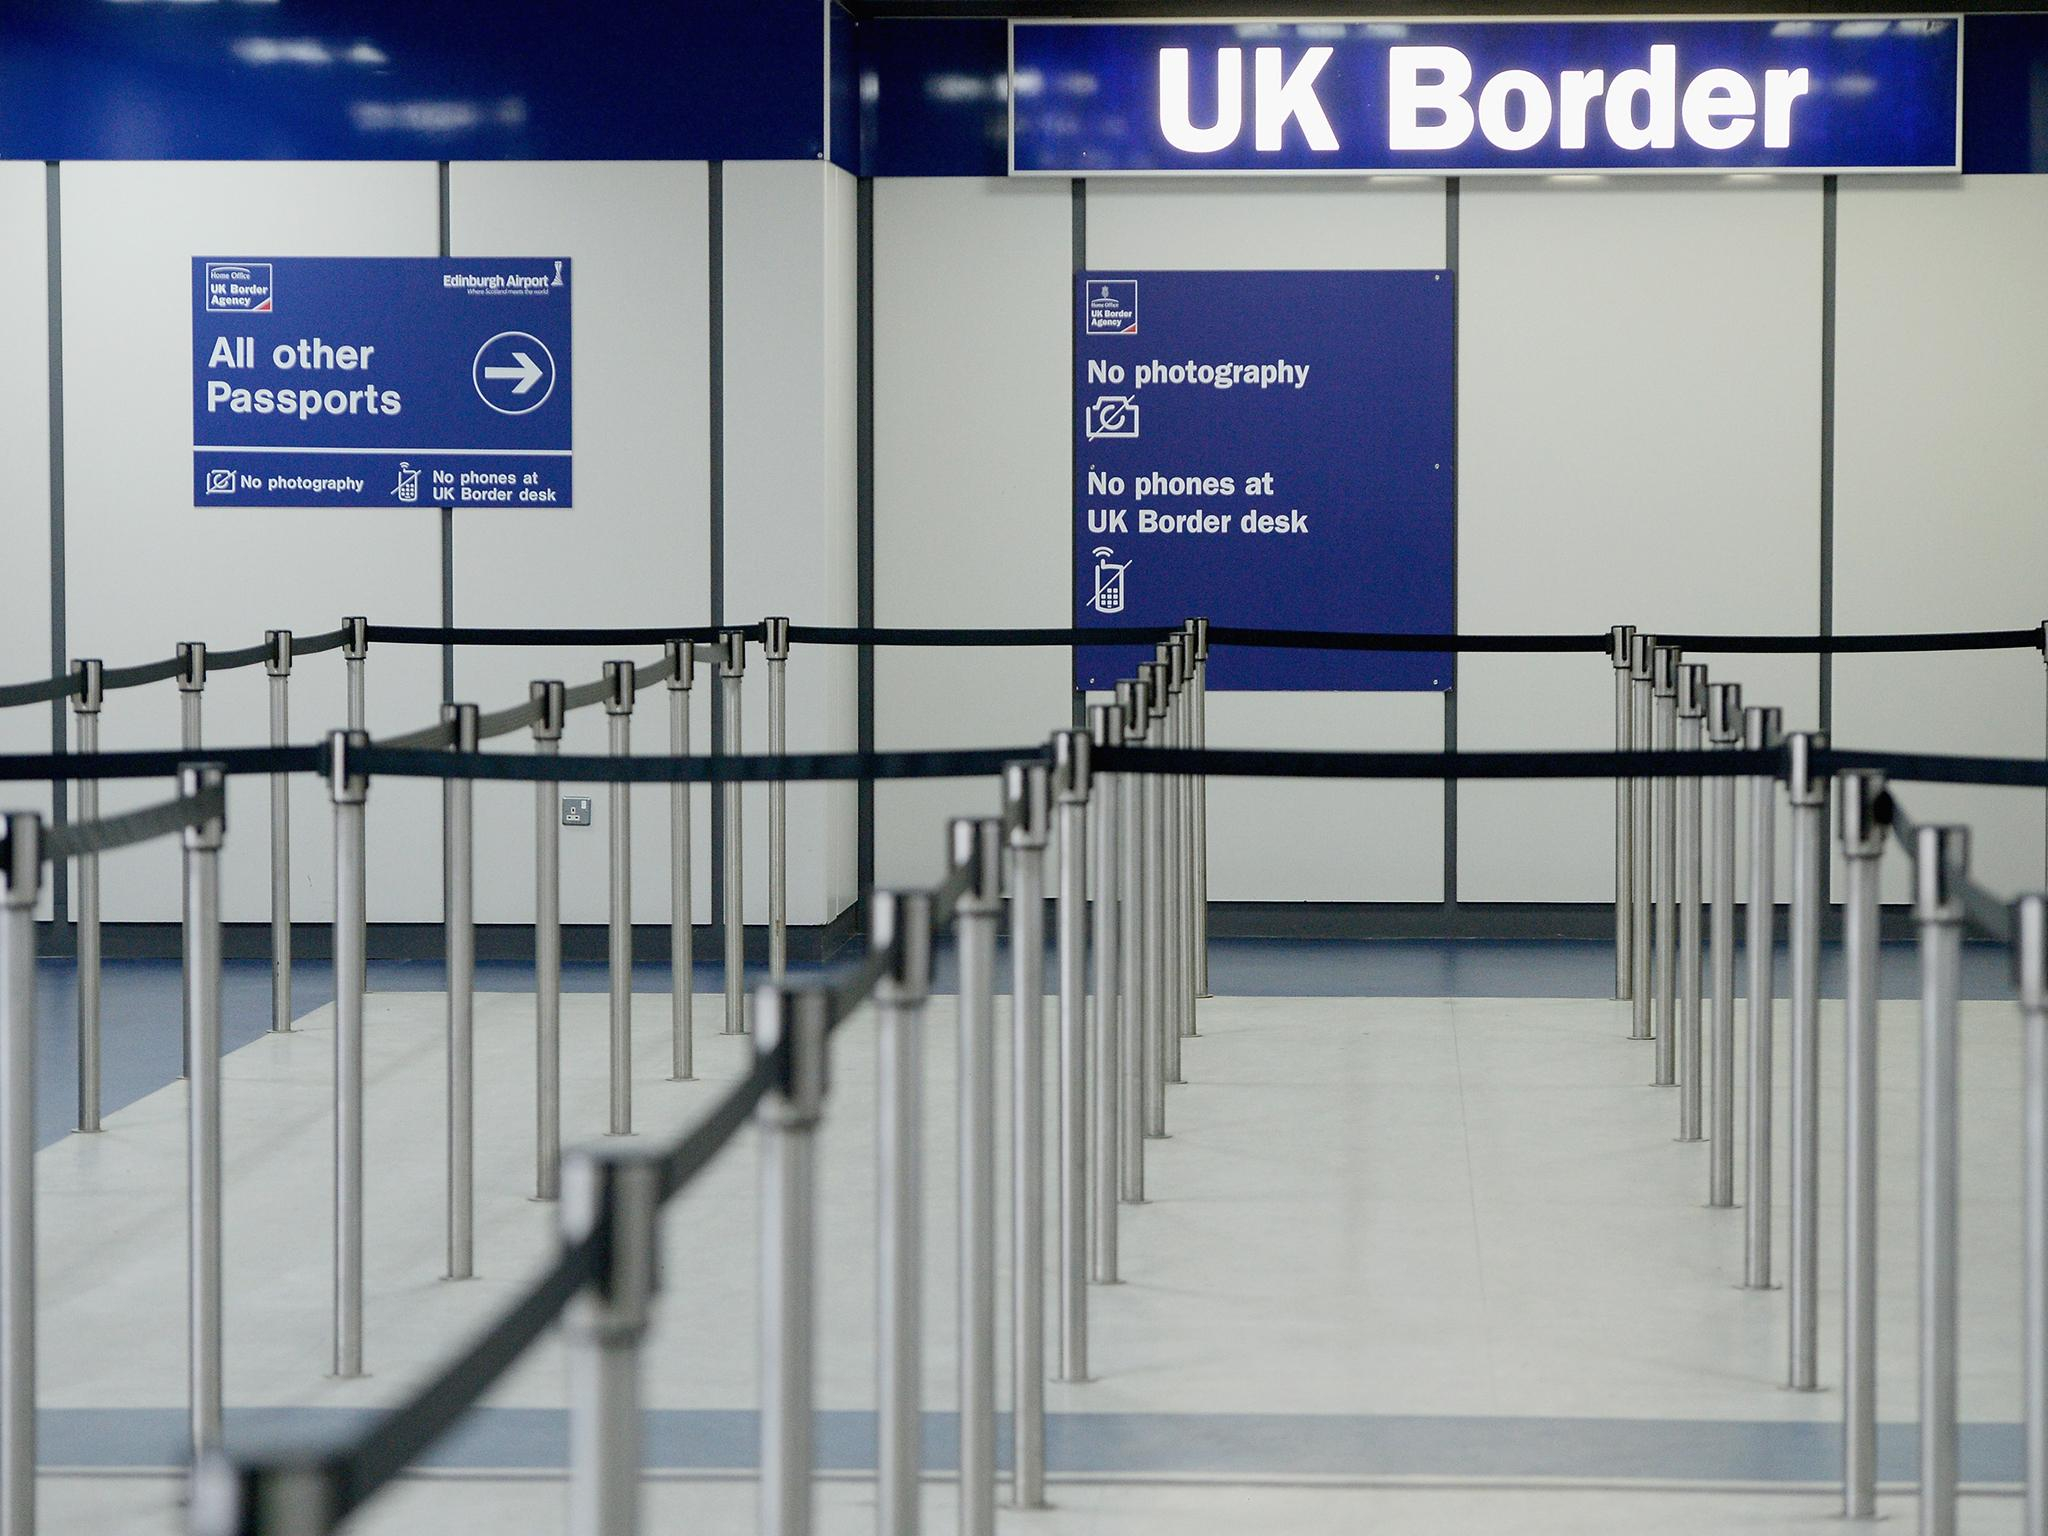 Home Office decision to scrap all international landing cards will 'weaken our borders', says union